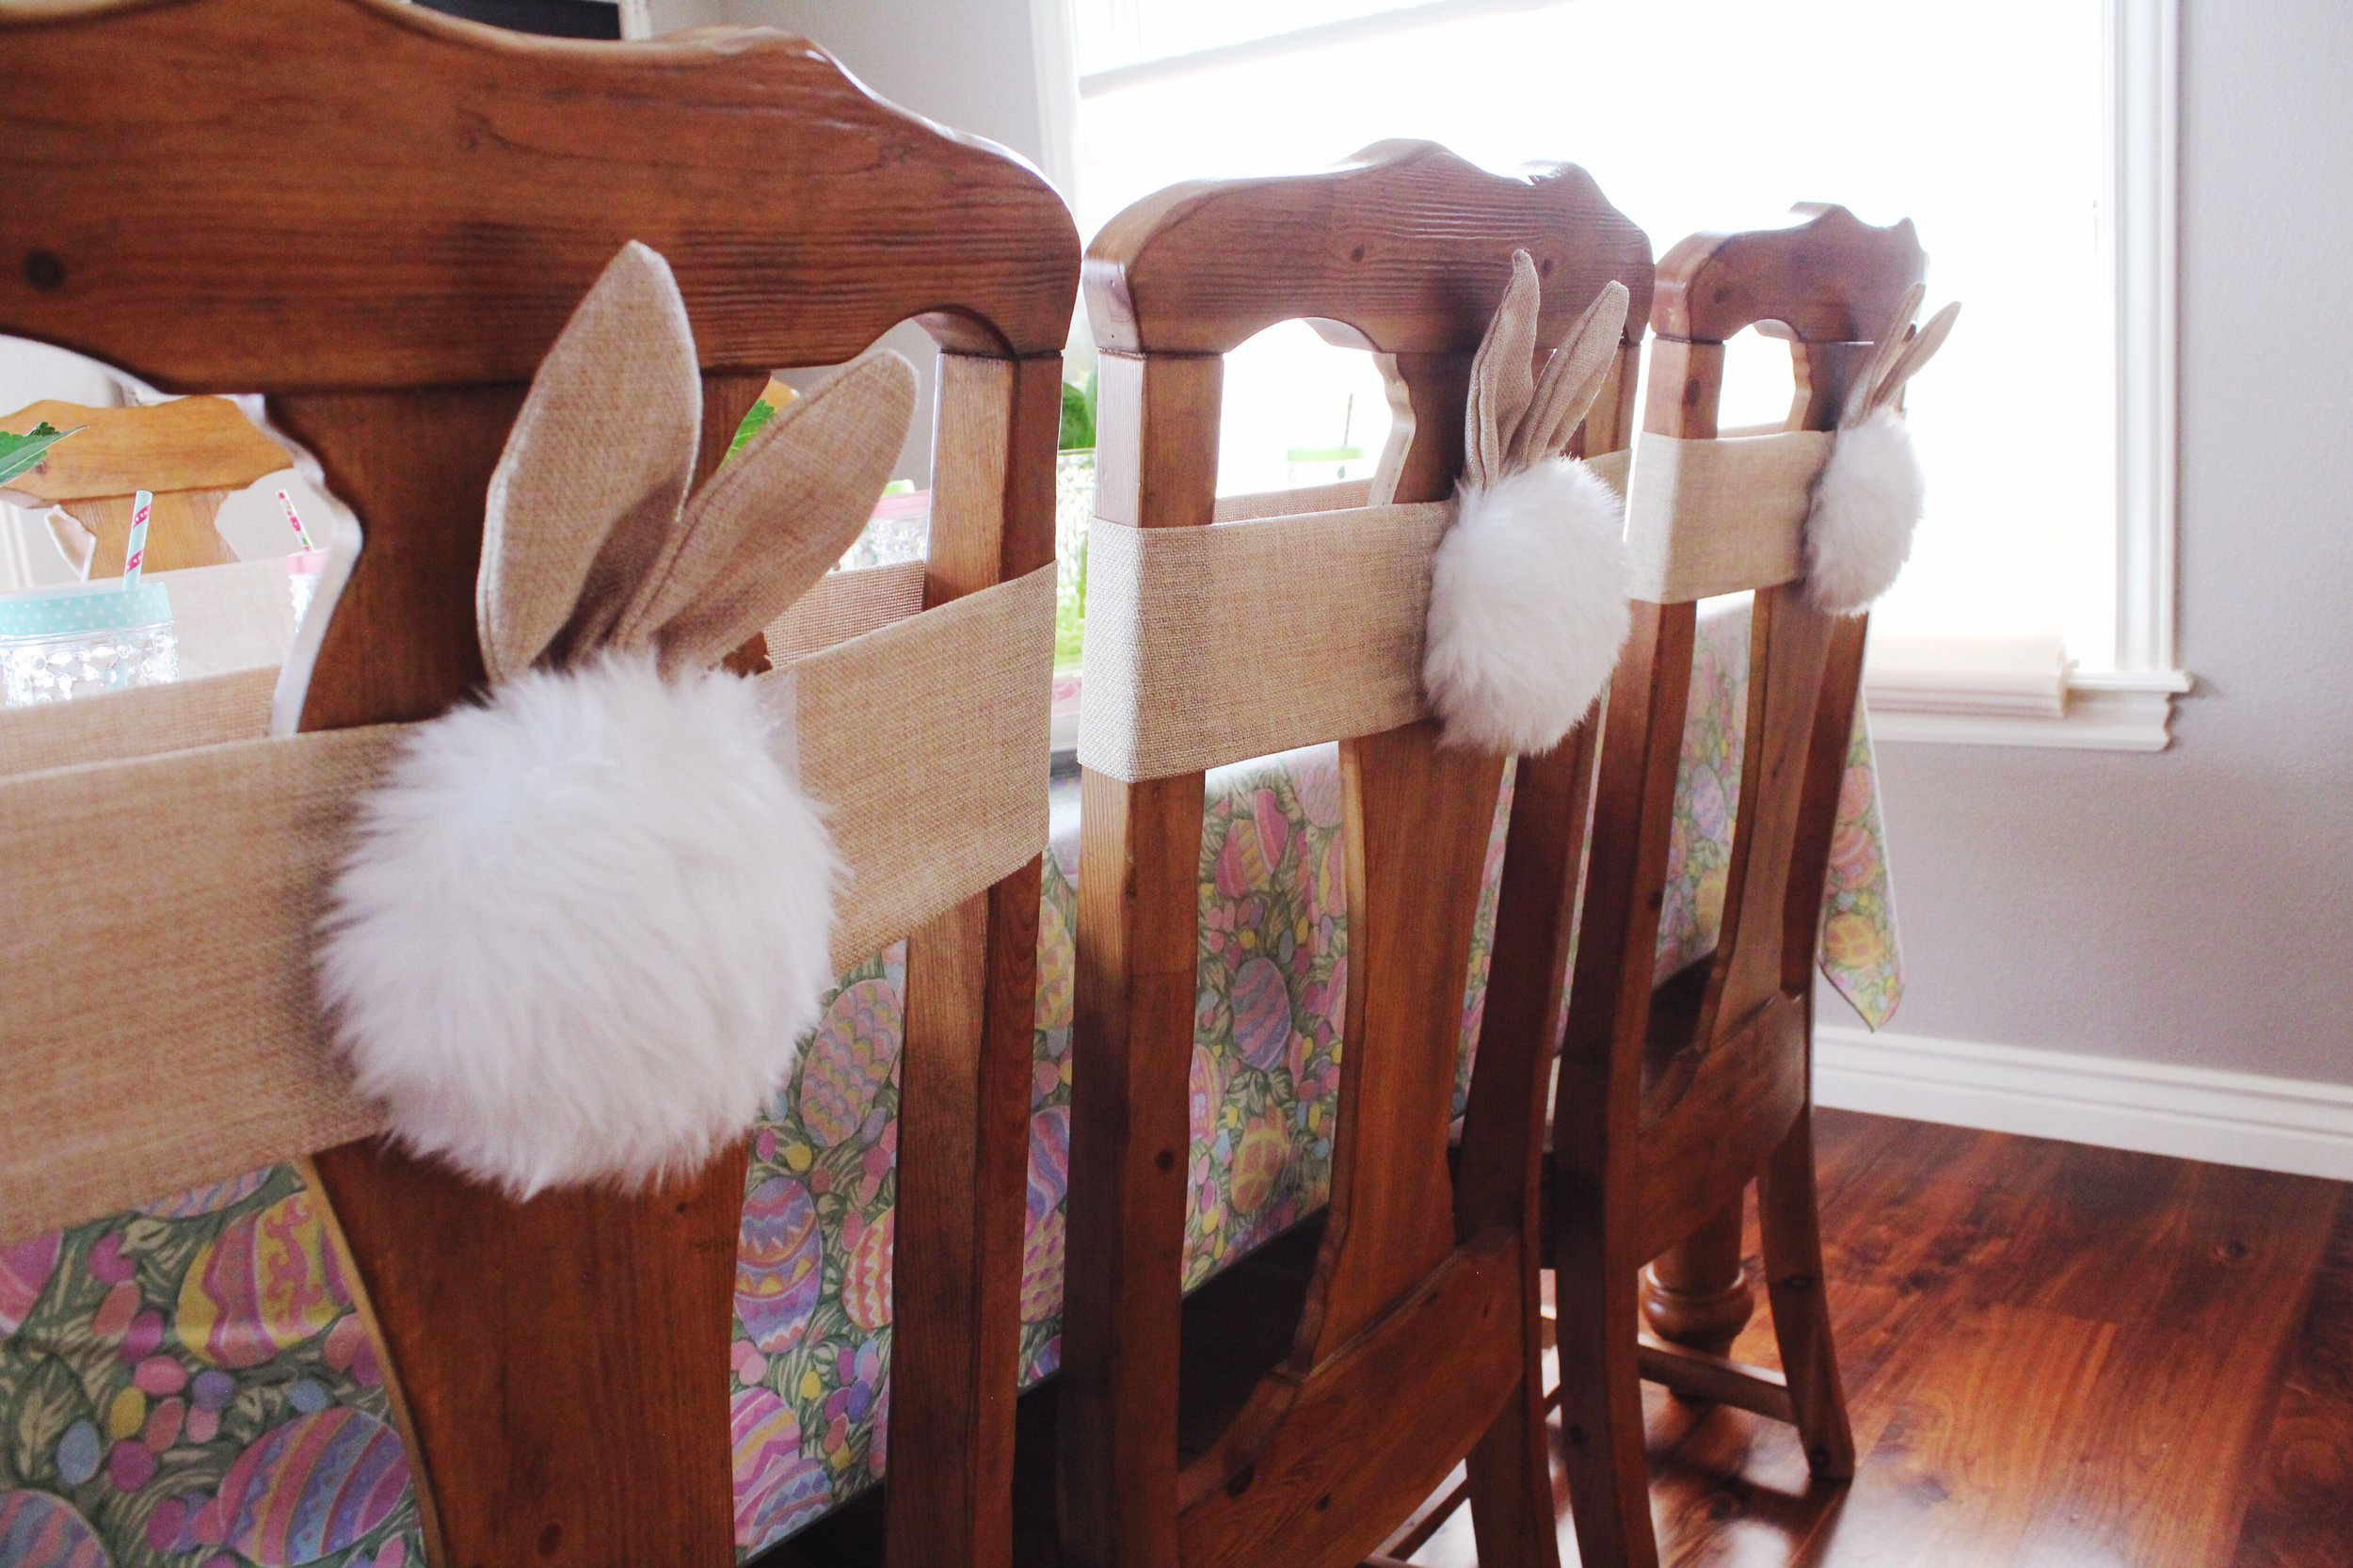 Easter Bunny Tail Chair Backs_Pier 1 Imports_ Party Ideas_Design Organize Party.JPG